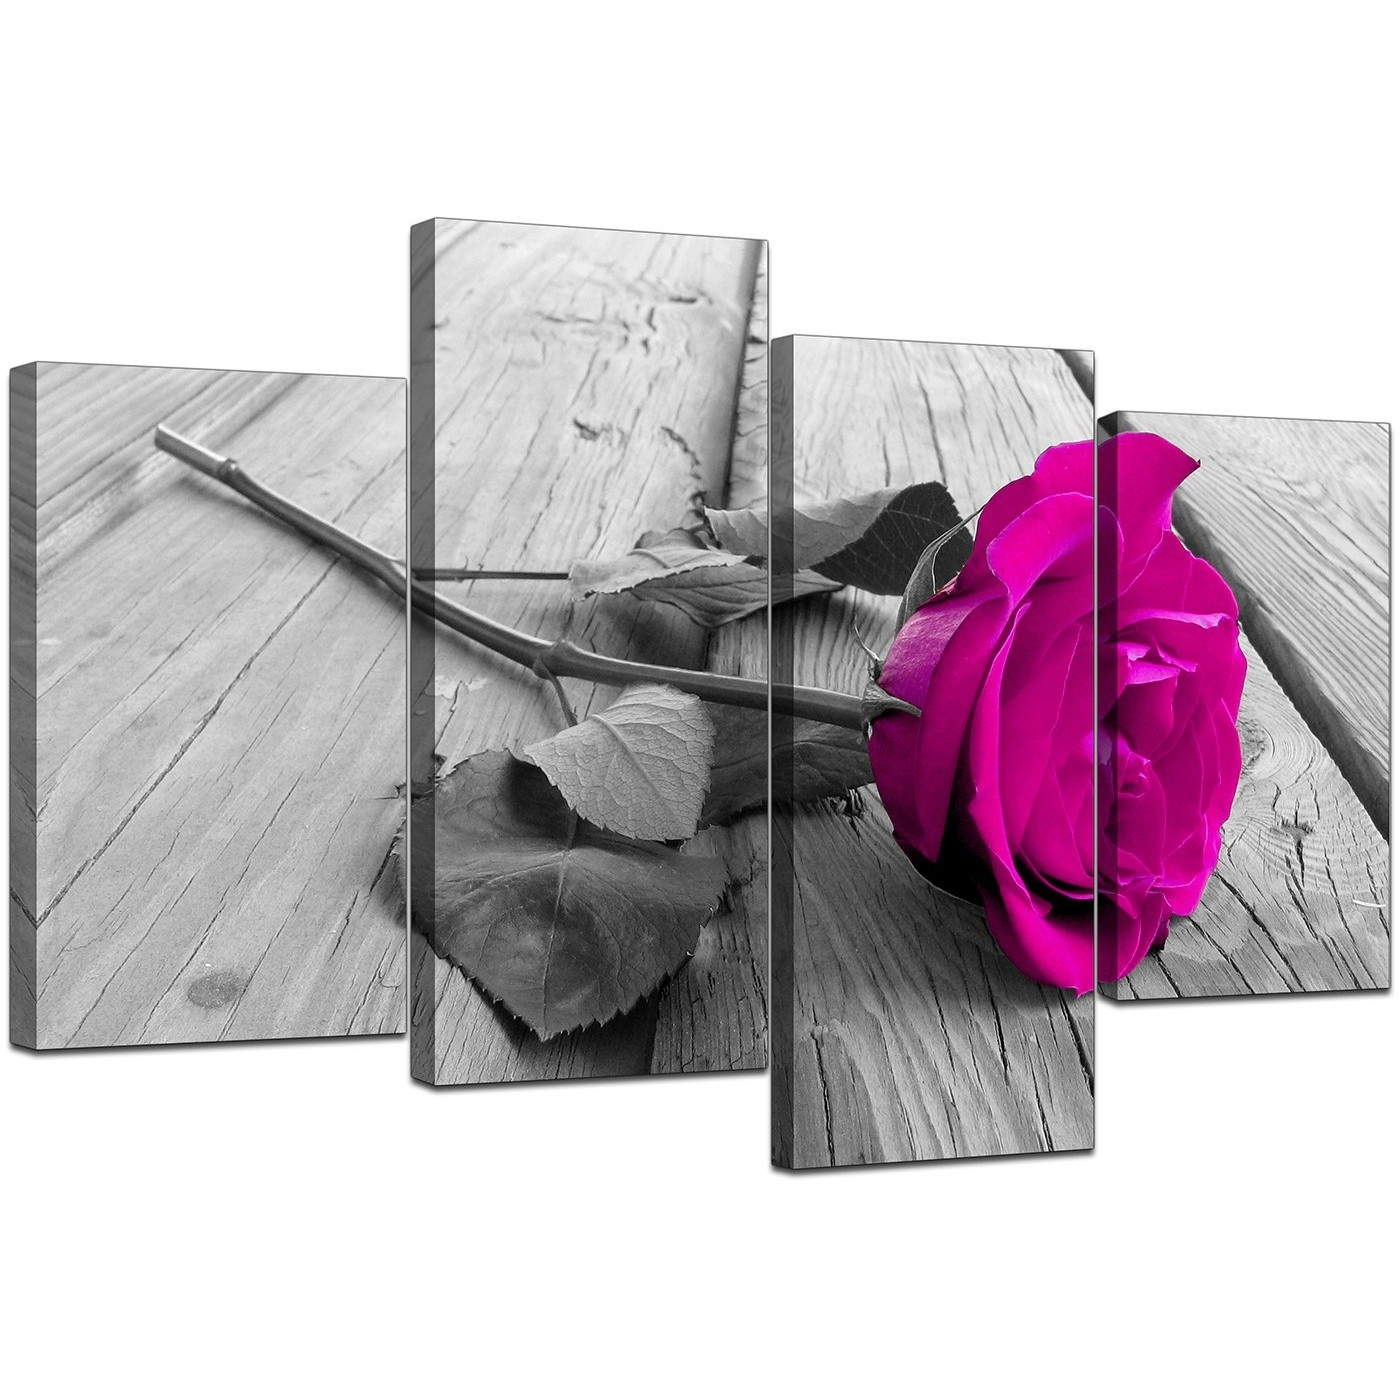 Canvas Prints Of Pink Rose In Black & White For Your Bedroom With Regard To Most Popular Pink Canvas Wall Art (View 8 of 15)